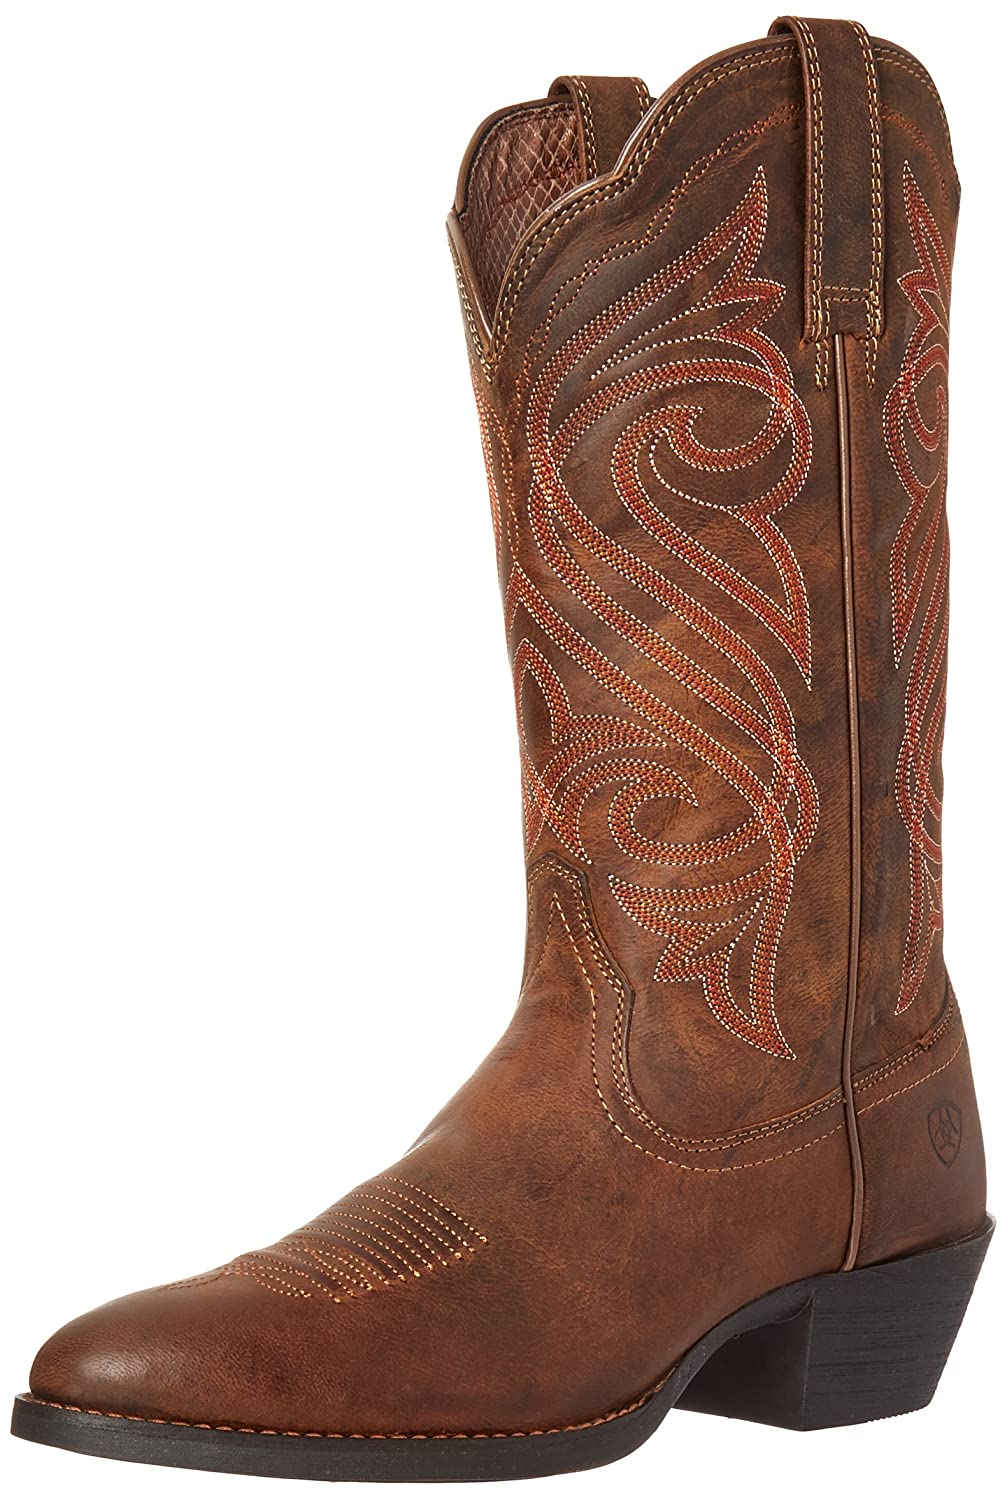 Ariat Women's Round up R Toe Western Cowboy Boot B01BPW7NQK 7 B(M) US|Dark Toffee